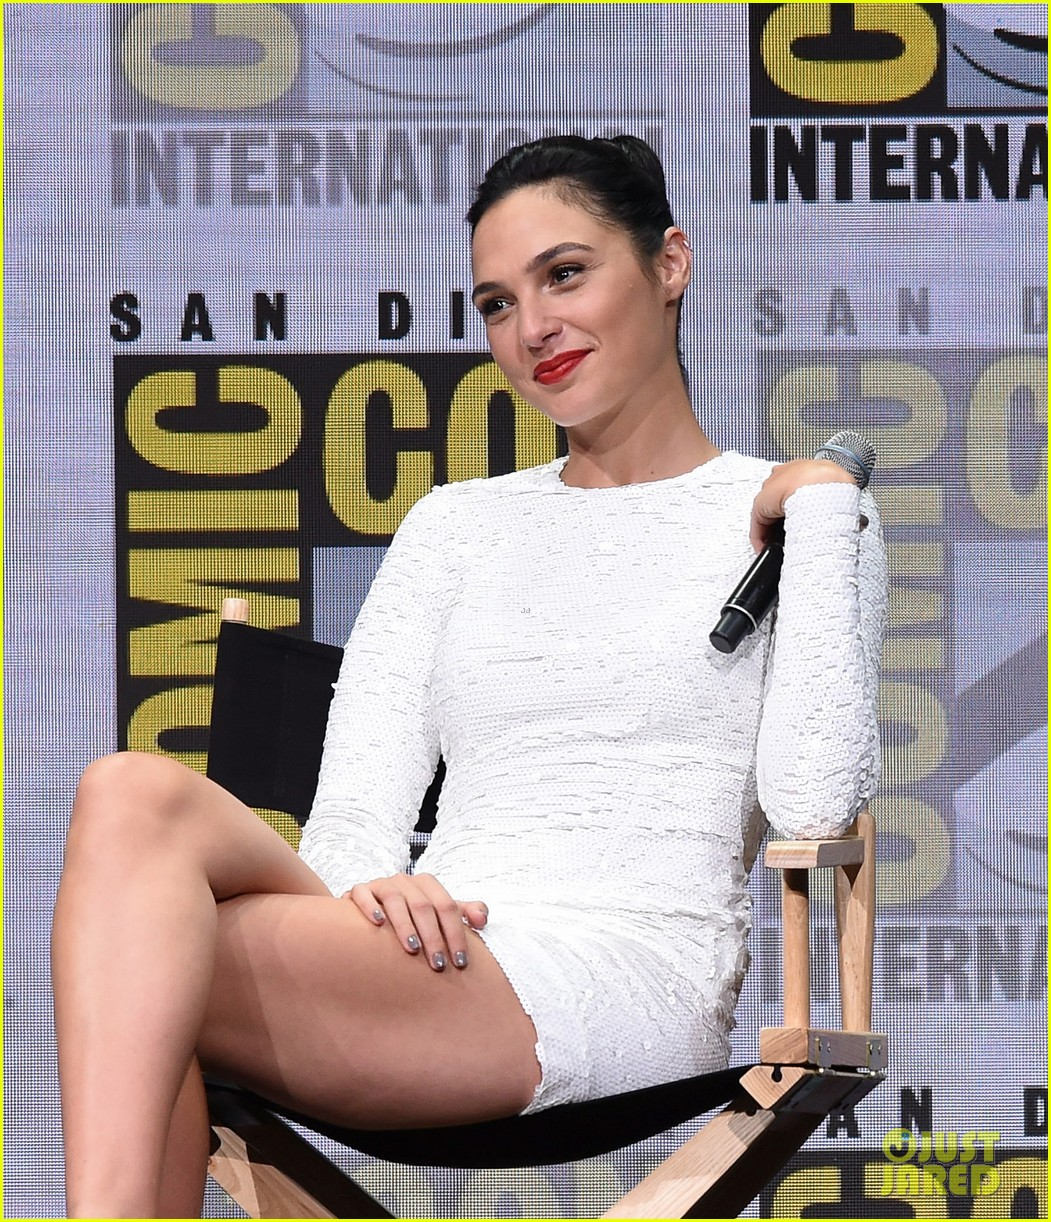 gal-gadot-ben-affleck-justice-league-comic-con-panel-21